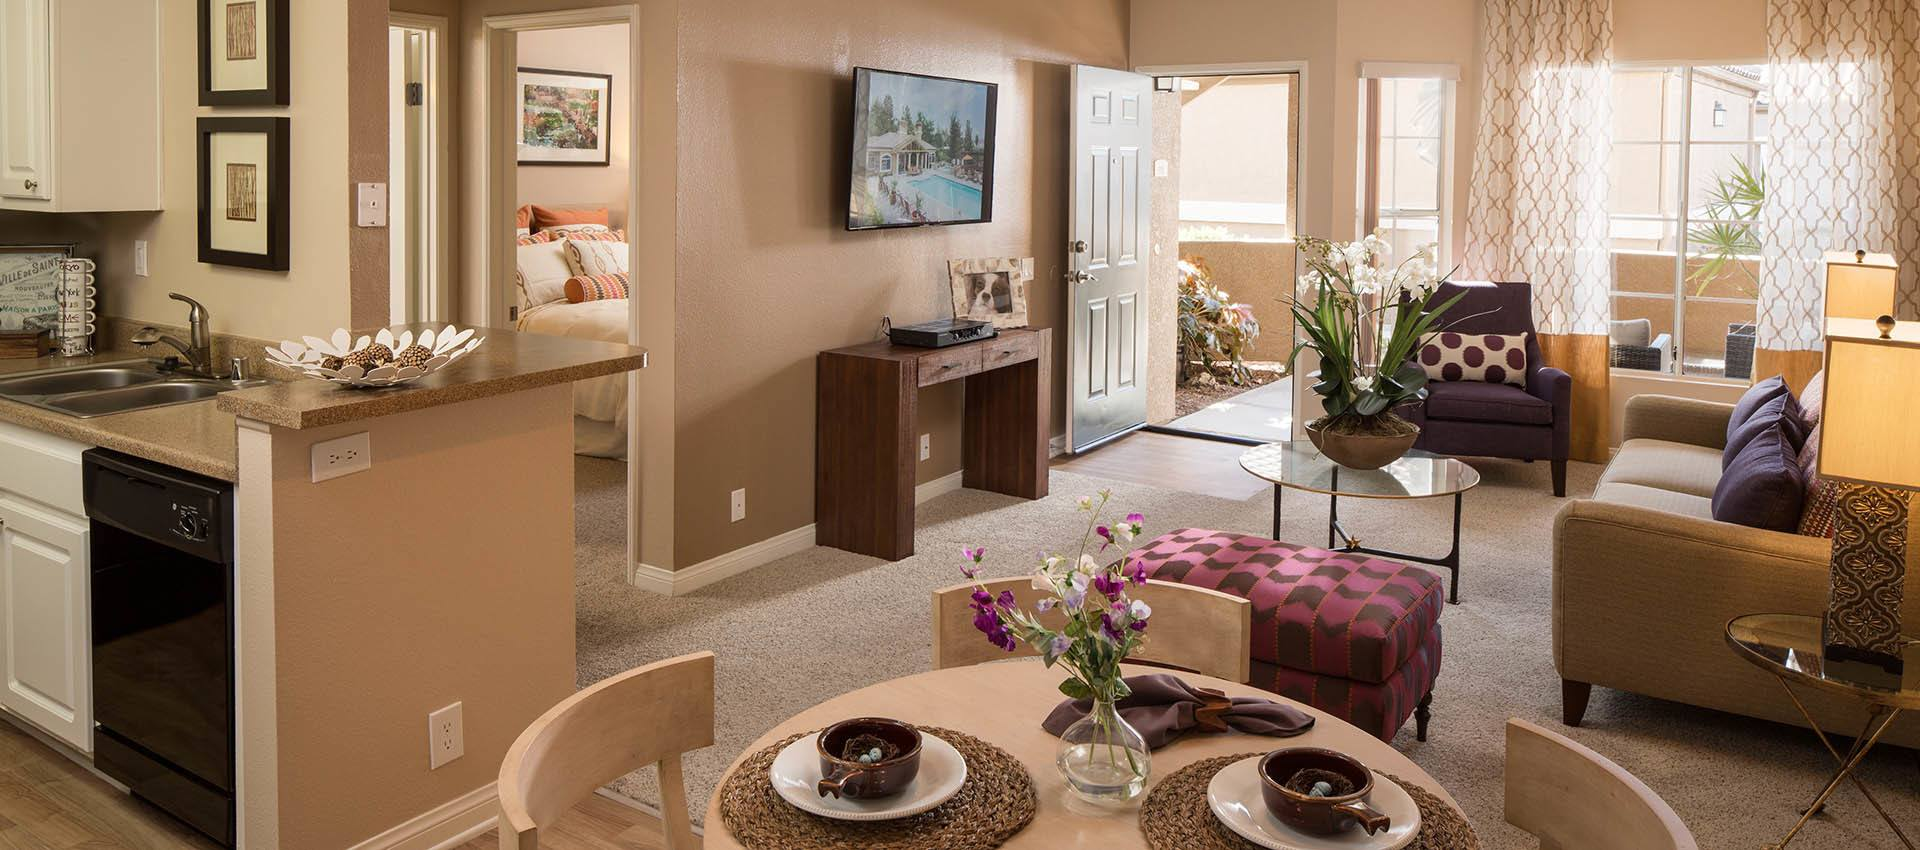 Spacious Living Room And Dining Area at Paloma Summit Condominium Rentals in Foothill Ranch, CA